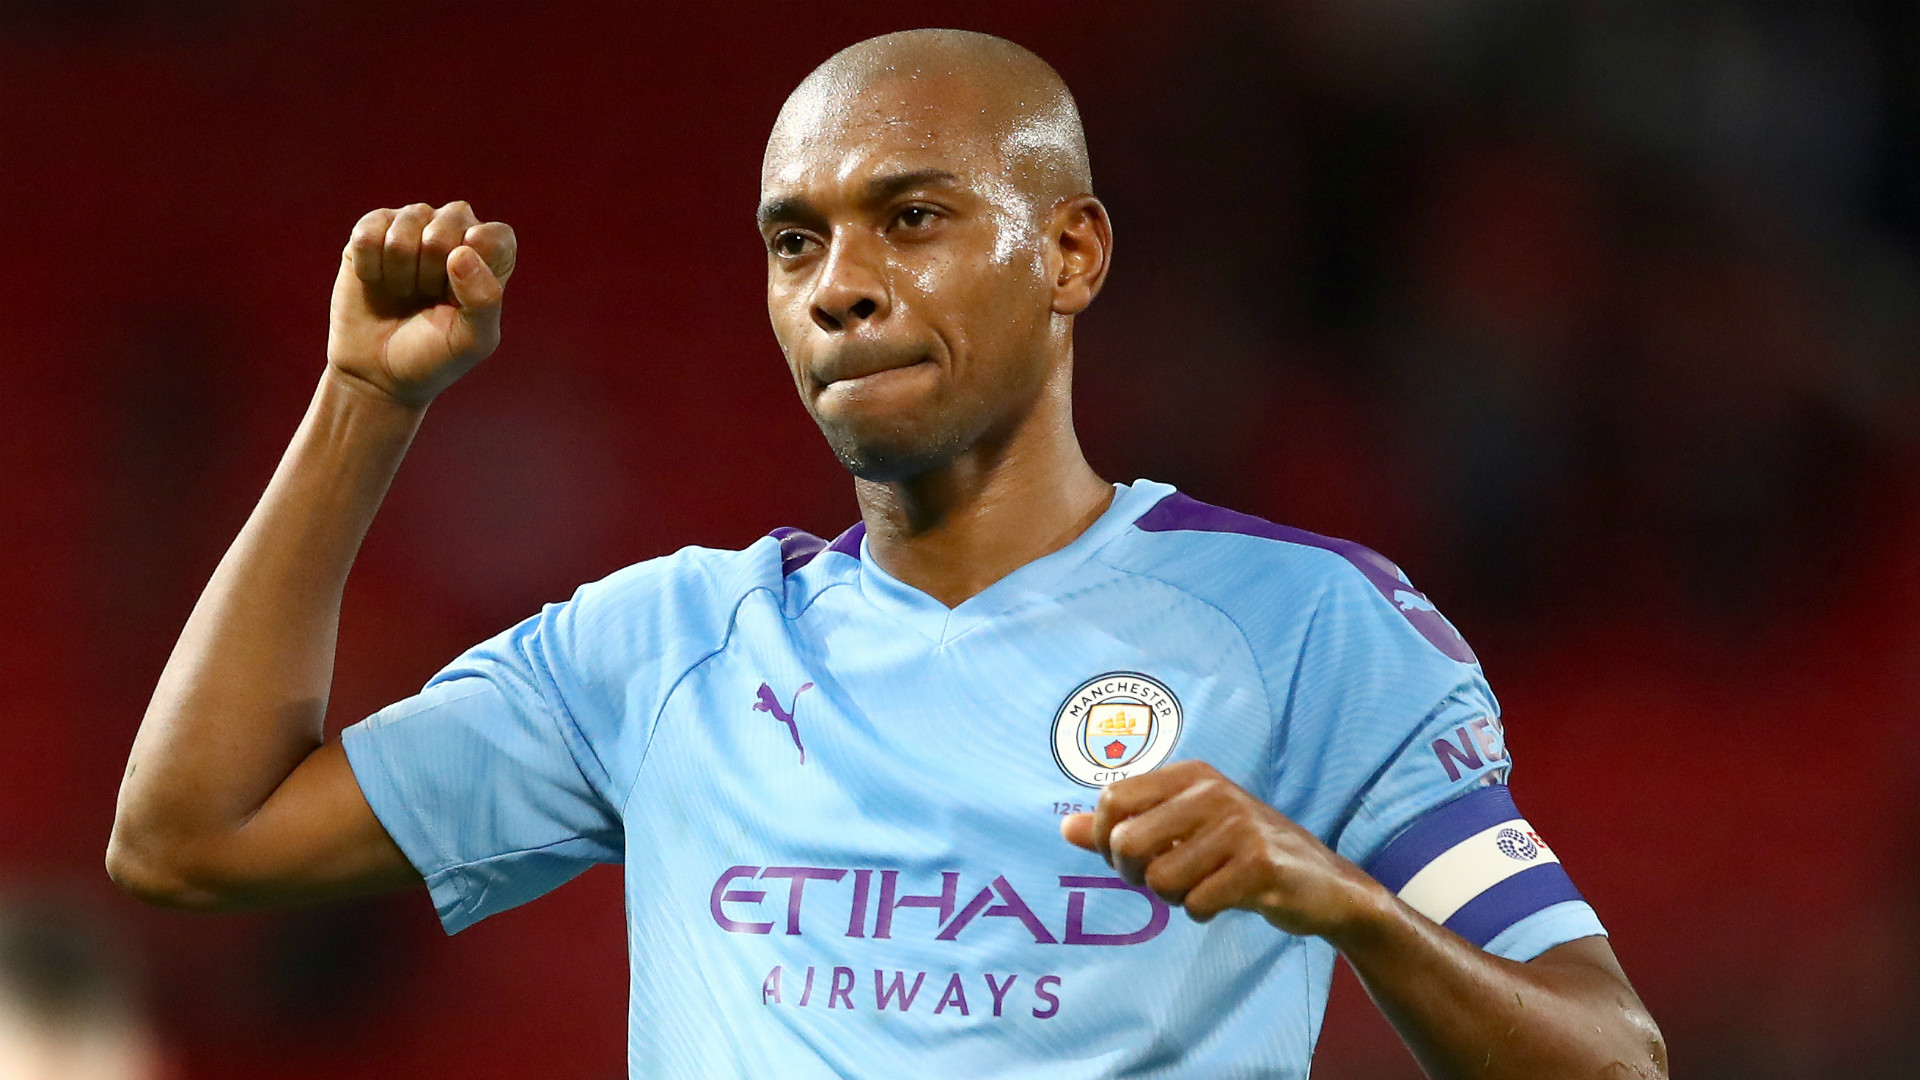 Fernandinho reveals he is set to sign new Man City contract